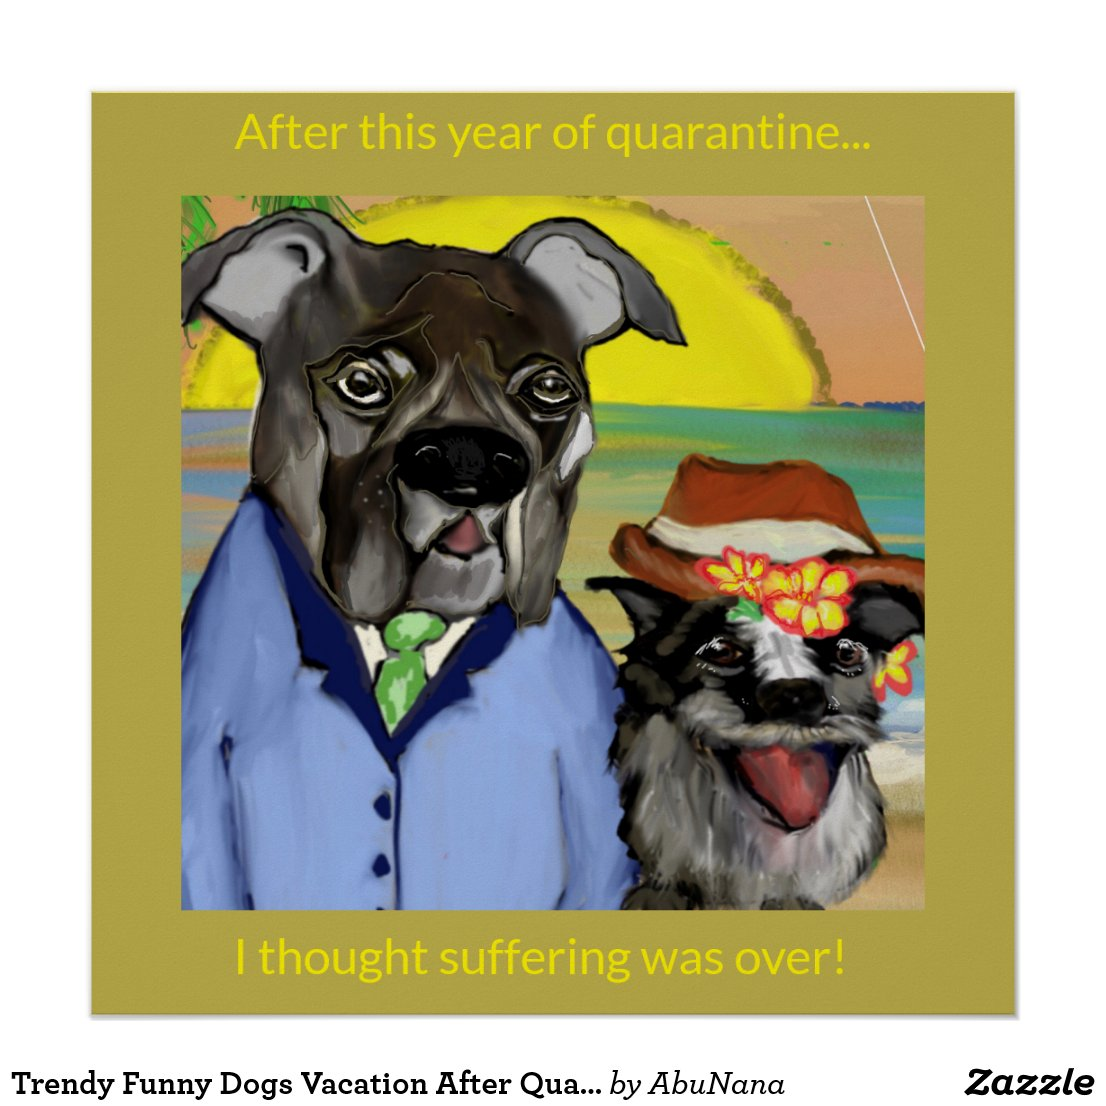 Trendy Funny Dogs Vacation After Quarantine Poster